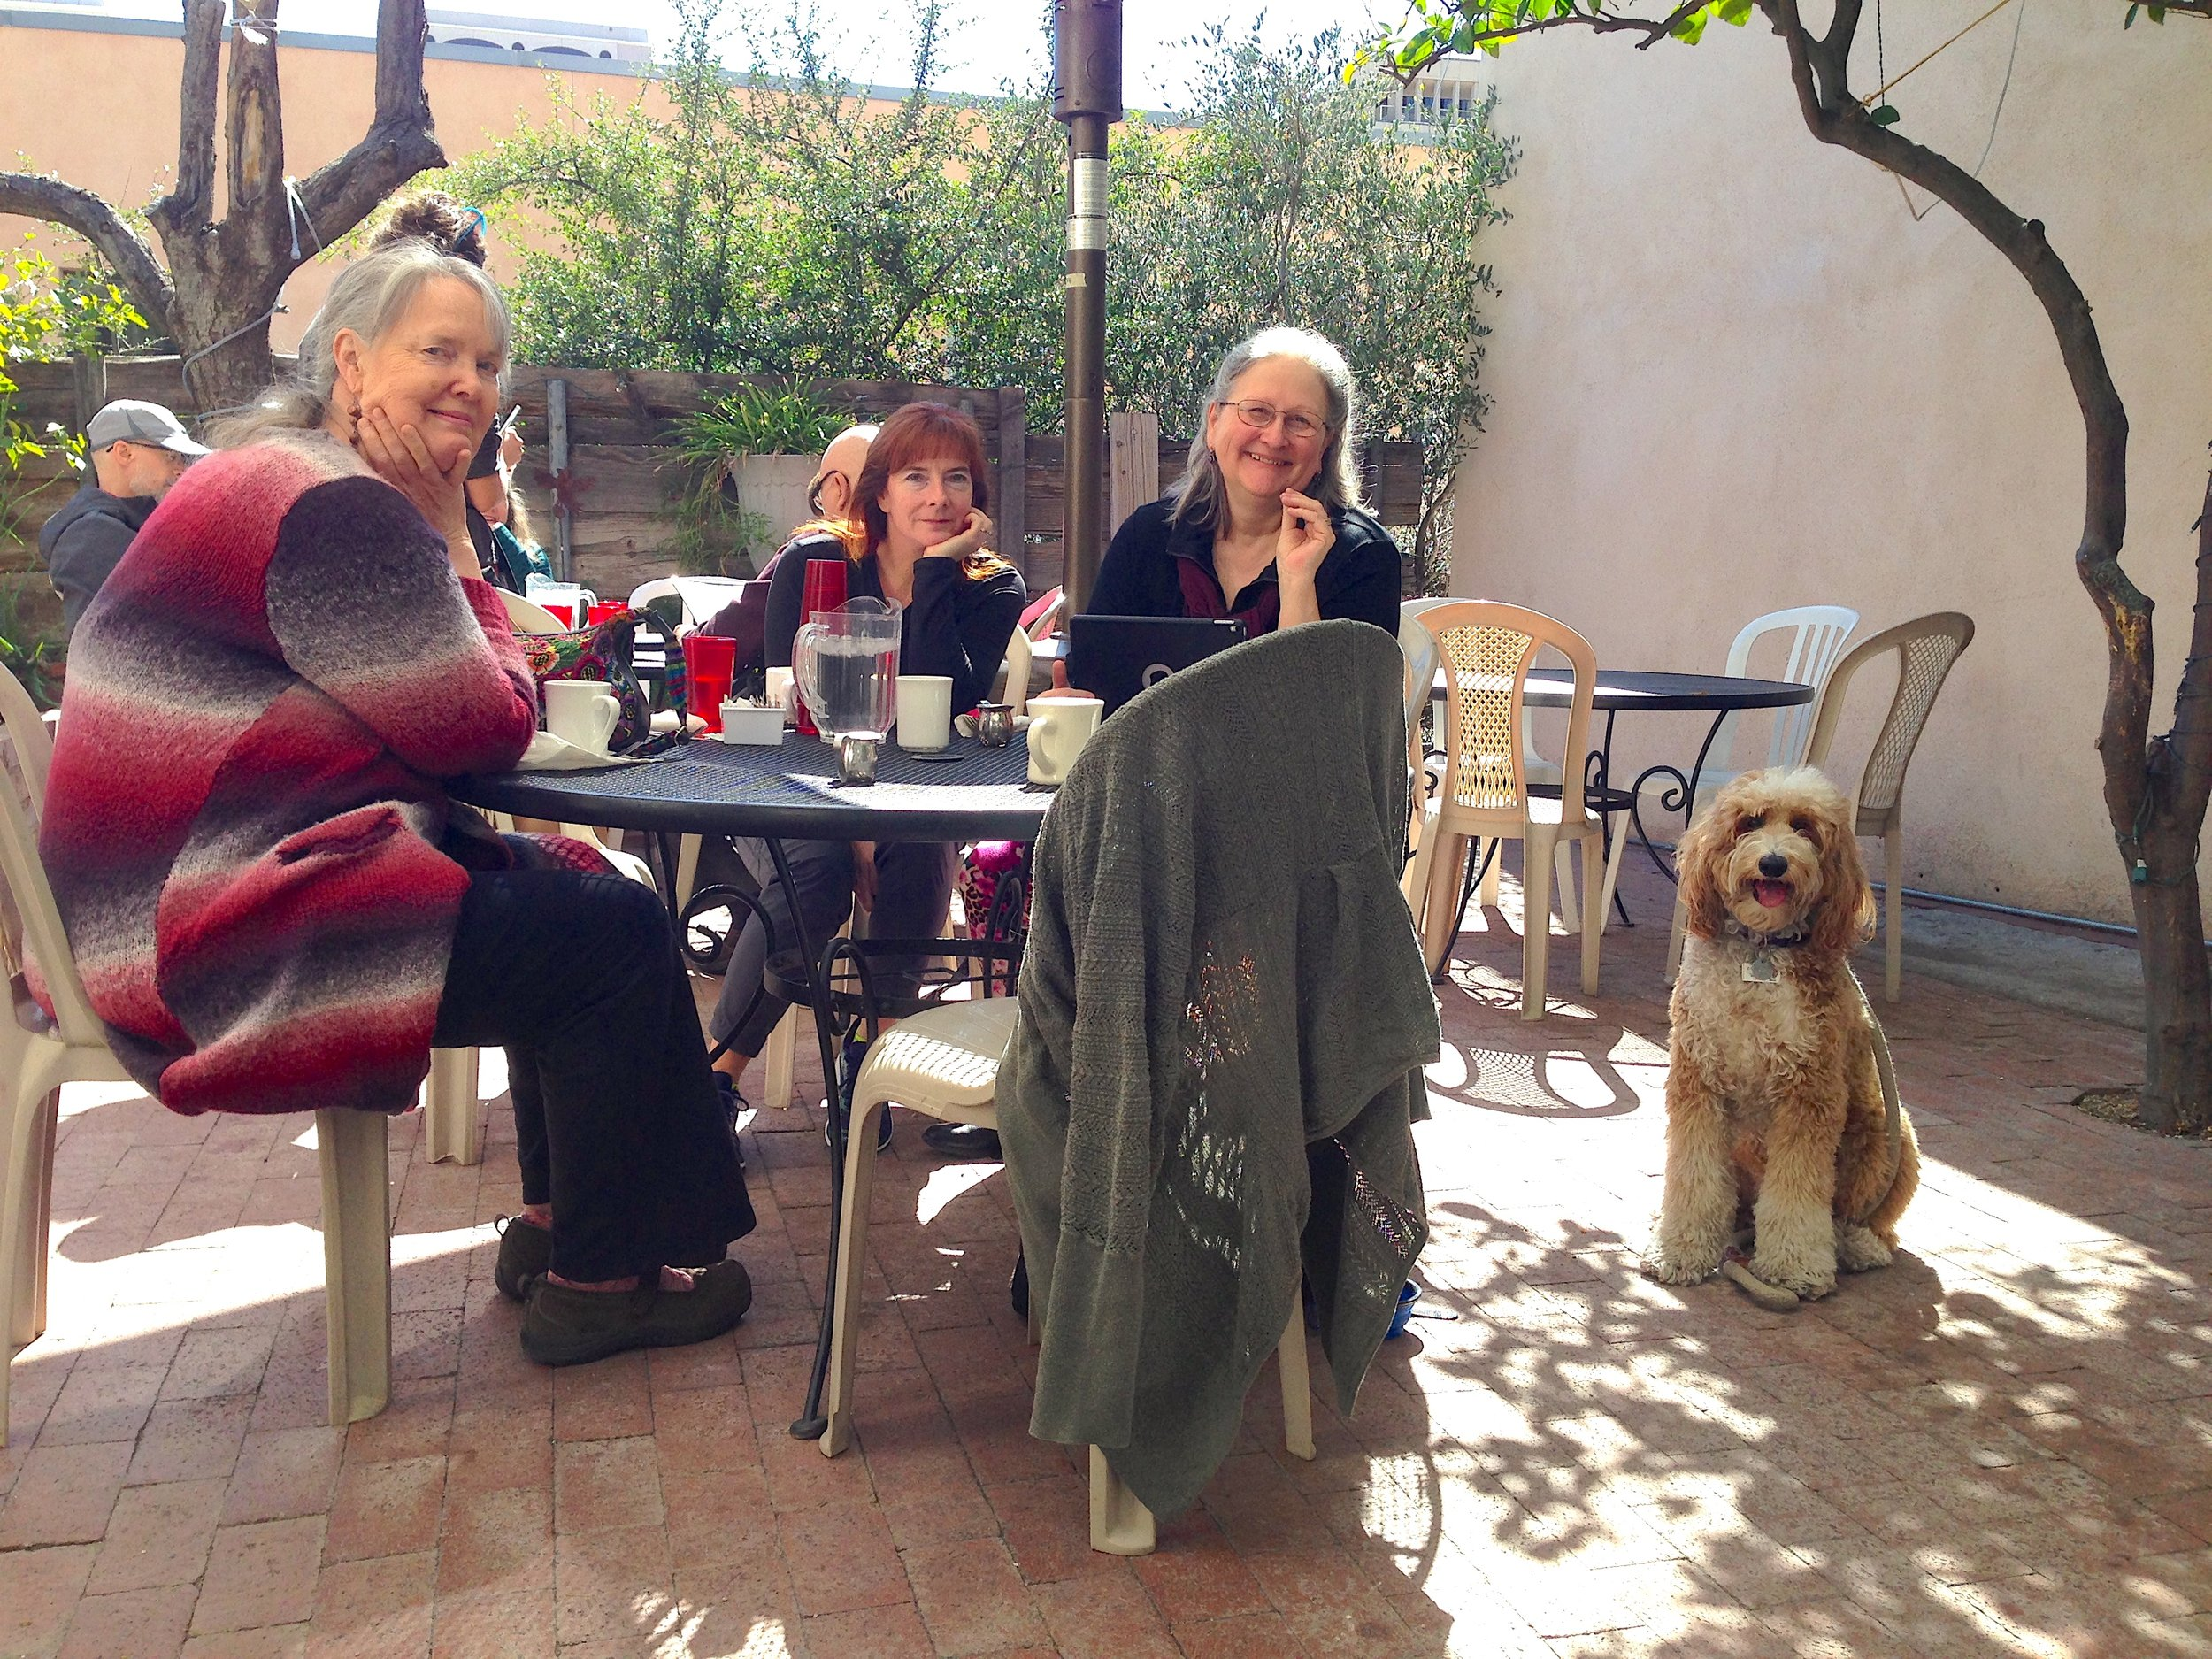 Bernie McSquare meets the women of Tucson Women Bloggers during our monthly social gathering in downtown Tucson.